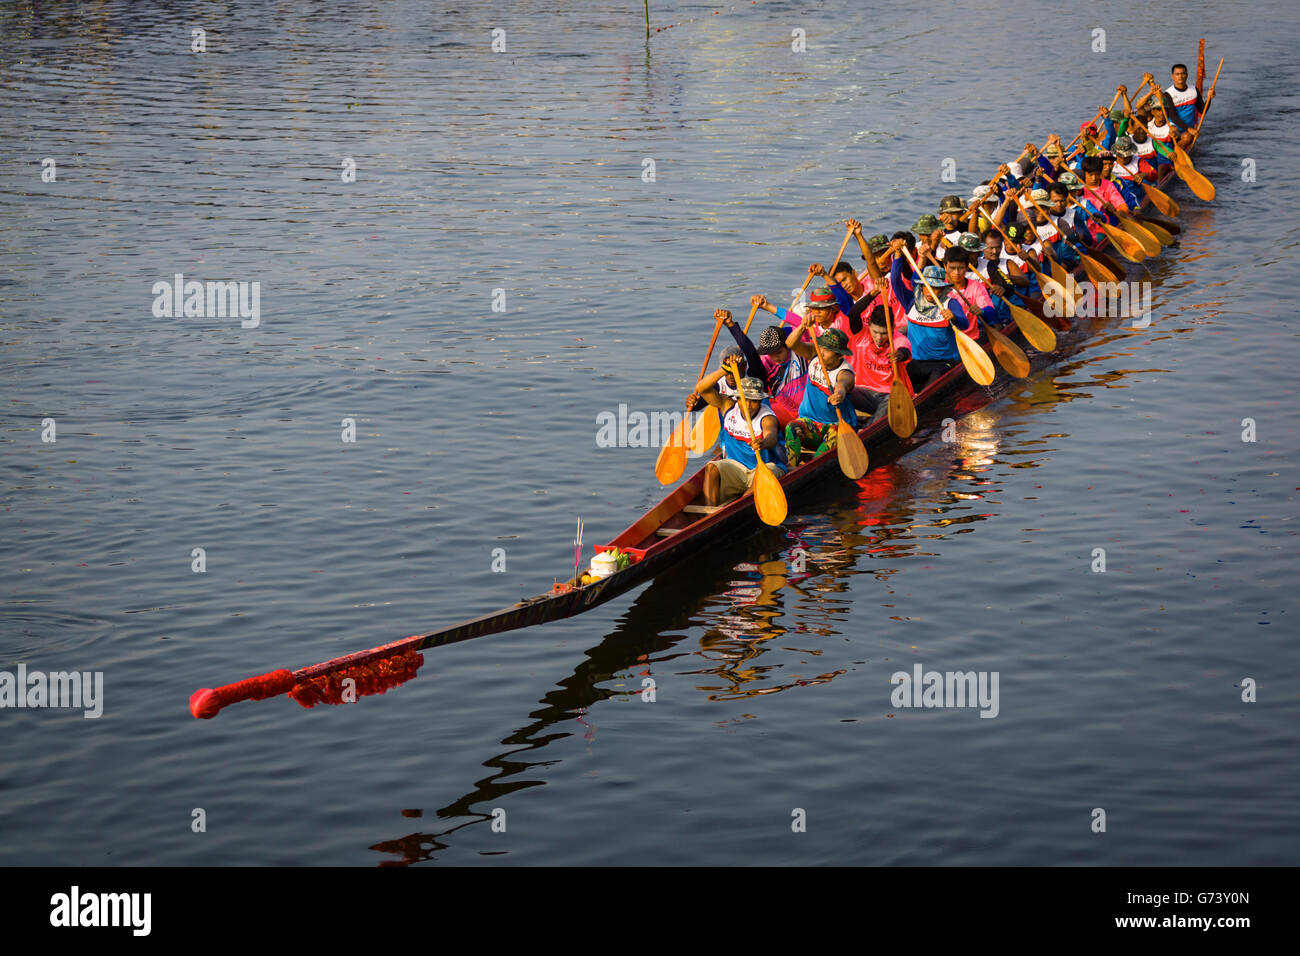 Participants for a longboat racing festival returning to the starting area after completing a race. - Stock Image